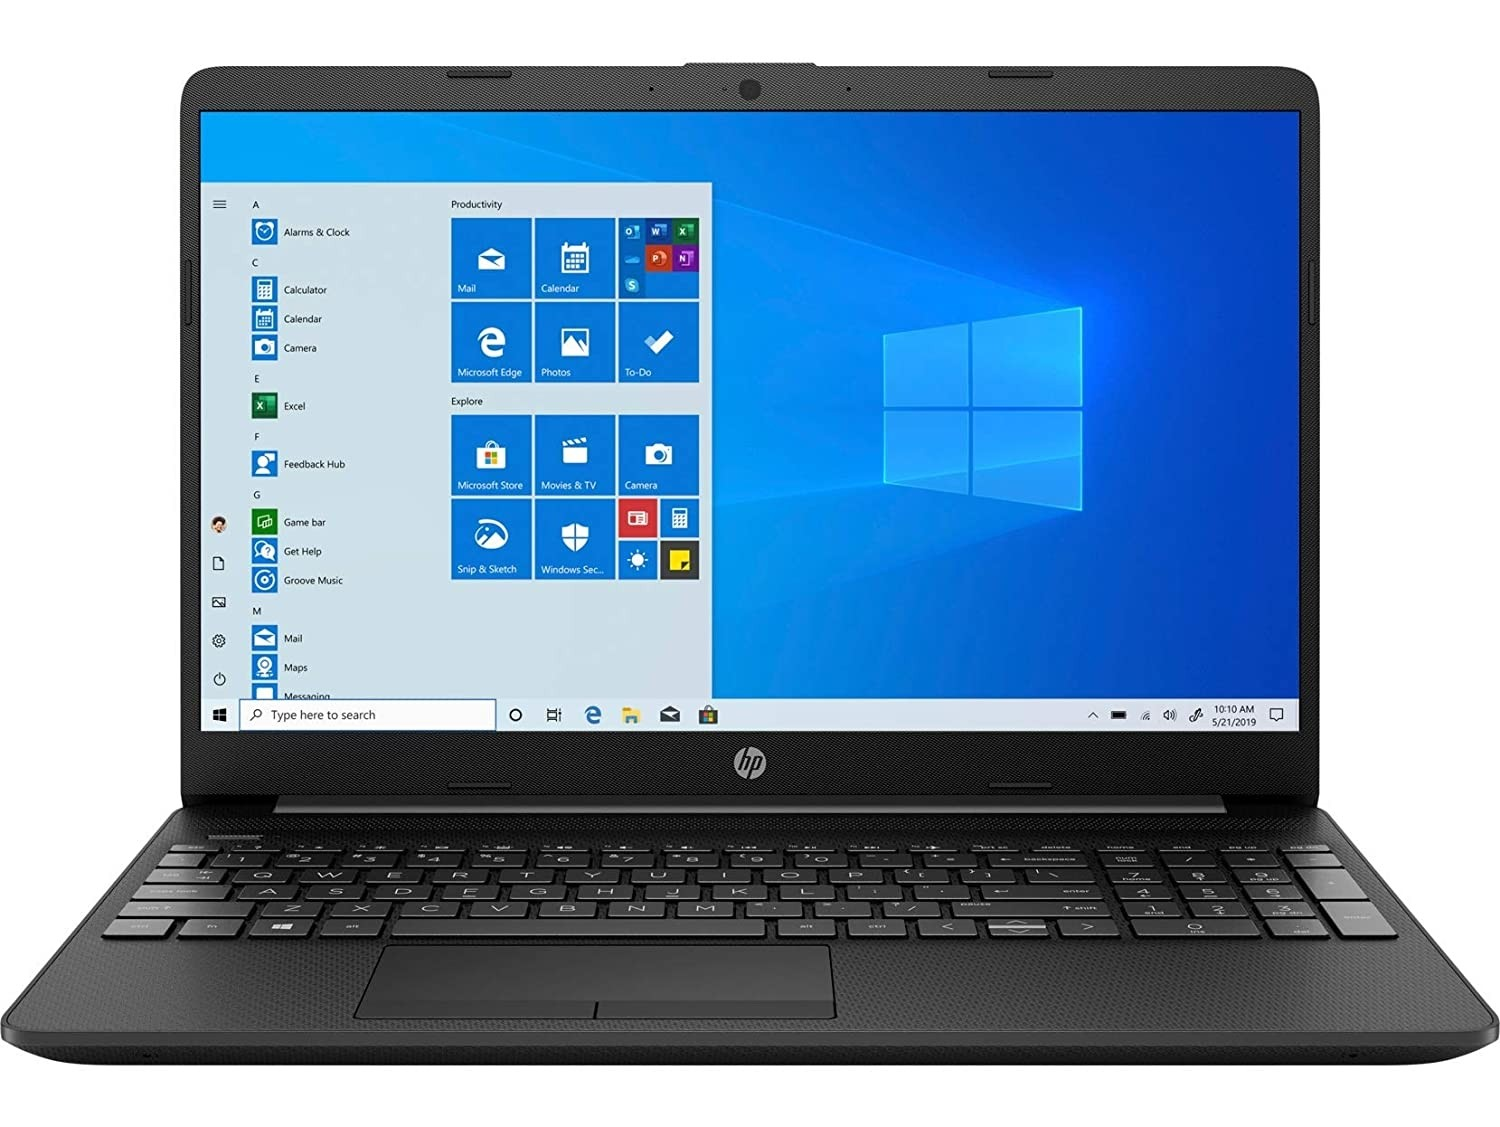 Refurbished laptops & desktops - HP 15 Entry Level 15.6-inch HD Laptop (AMD 3020e/4GB/1TB HDD/Windows 10 Home/Jet Black/1.74 Kg), 15s-gy0003AU